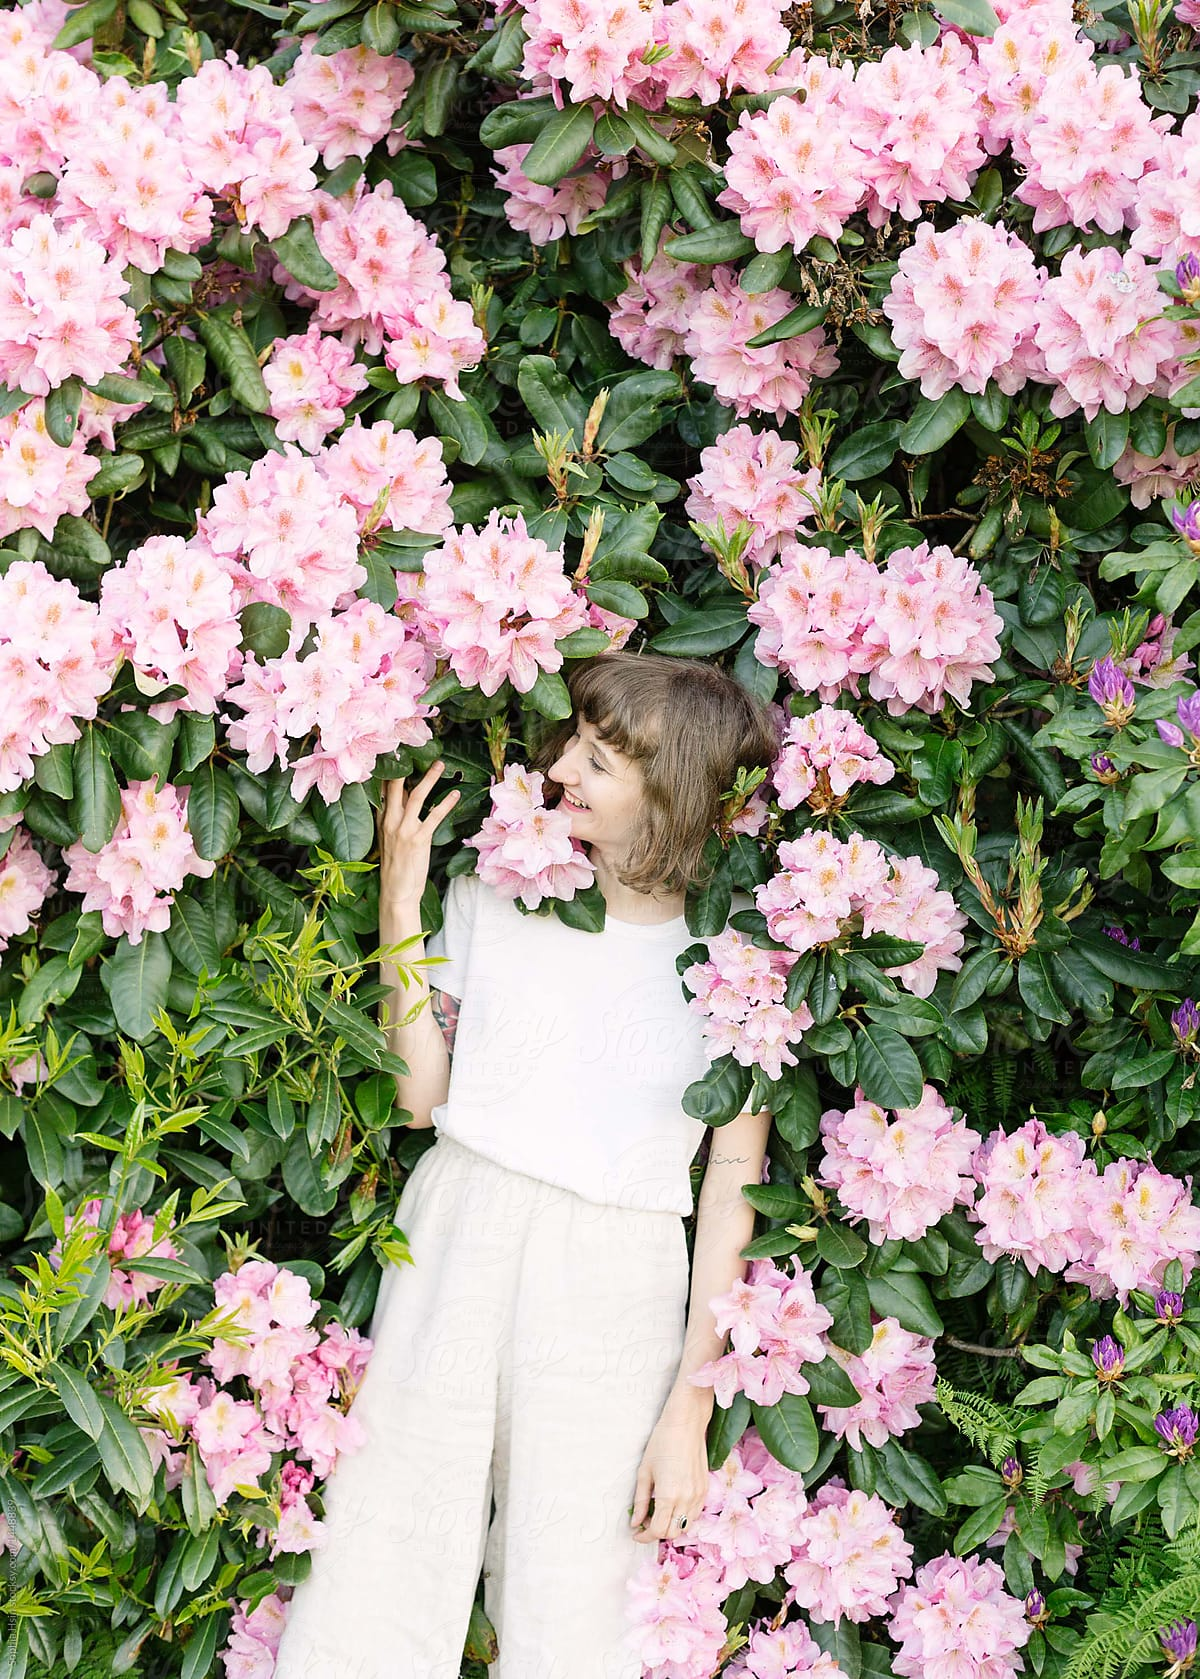 Portrait Of Girl Laughing In Pink Flower Bush Stocksy United